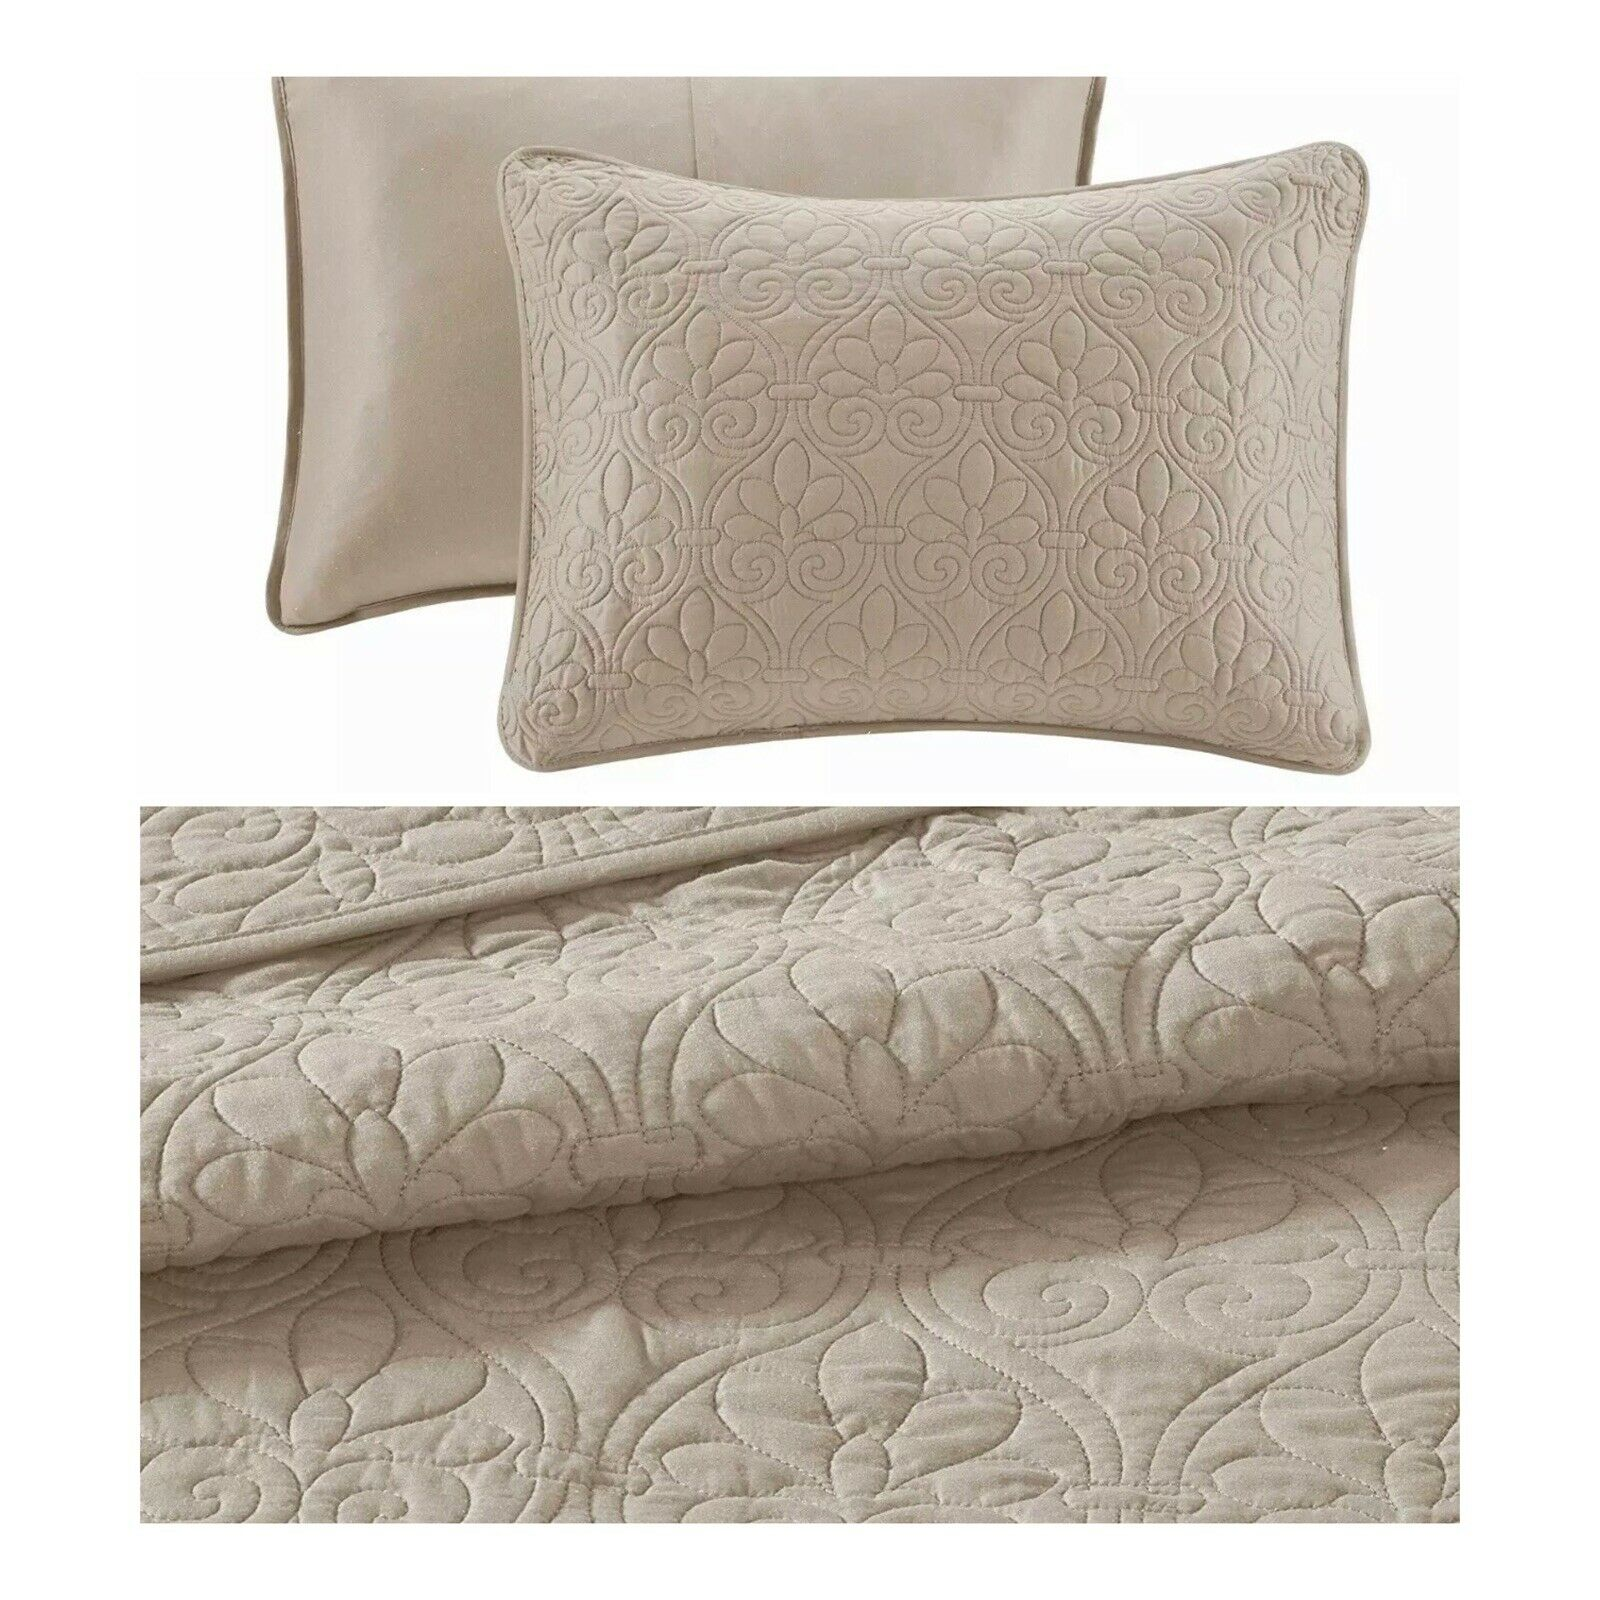 Madison Park 3 Piece Quebec Bedspread Set in Khaki Light Marronee 2 Pillow Shams